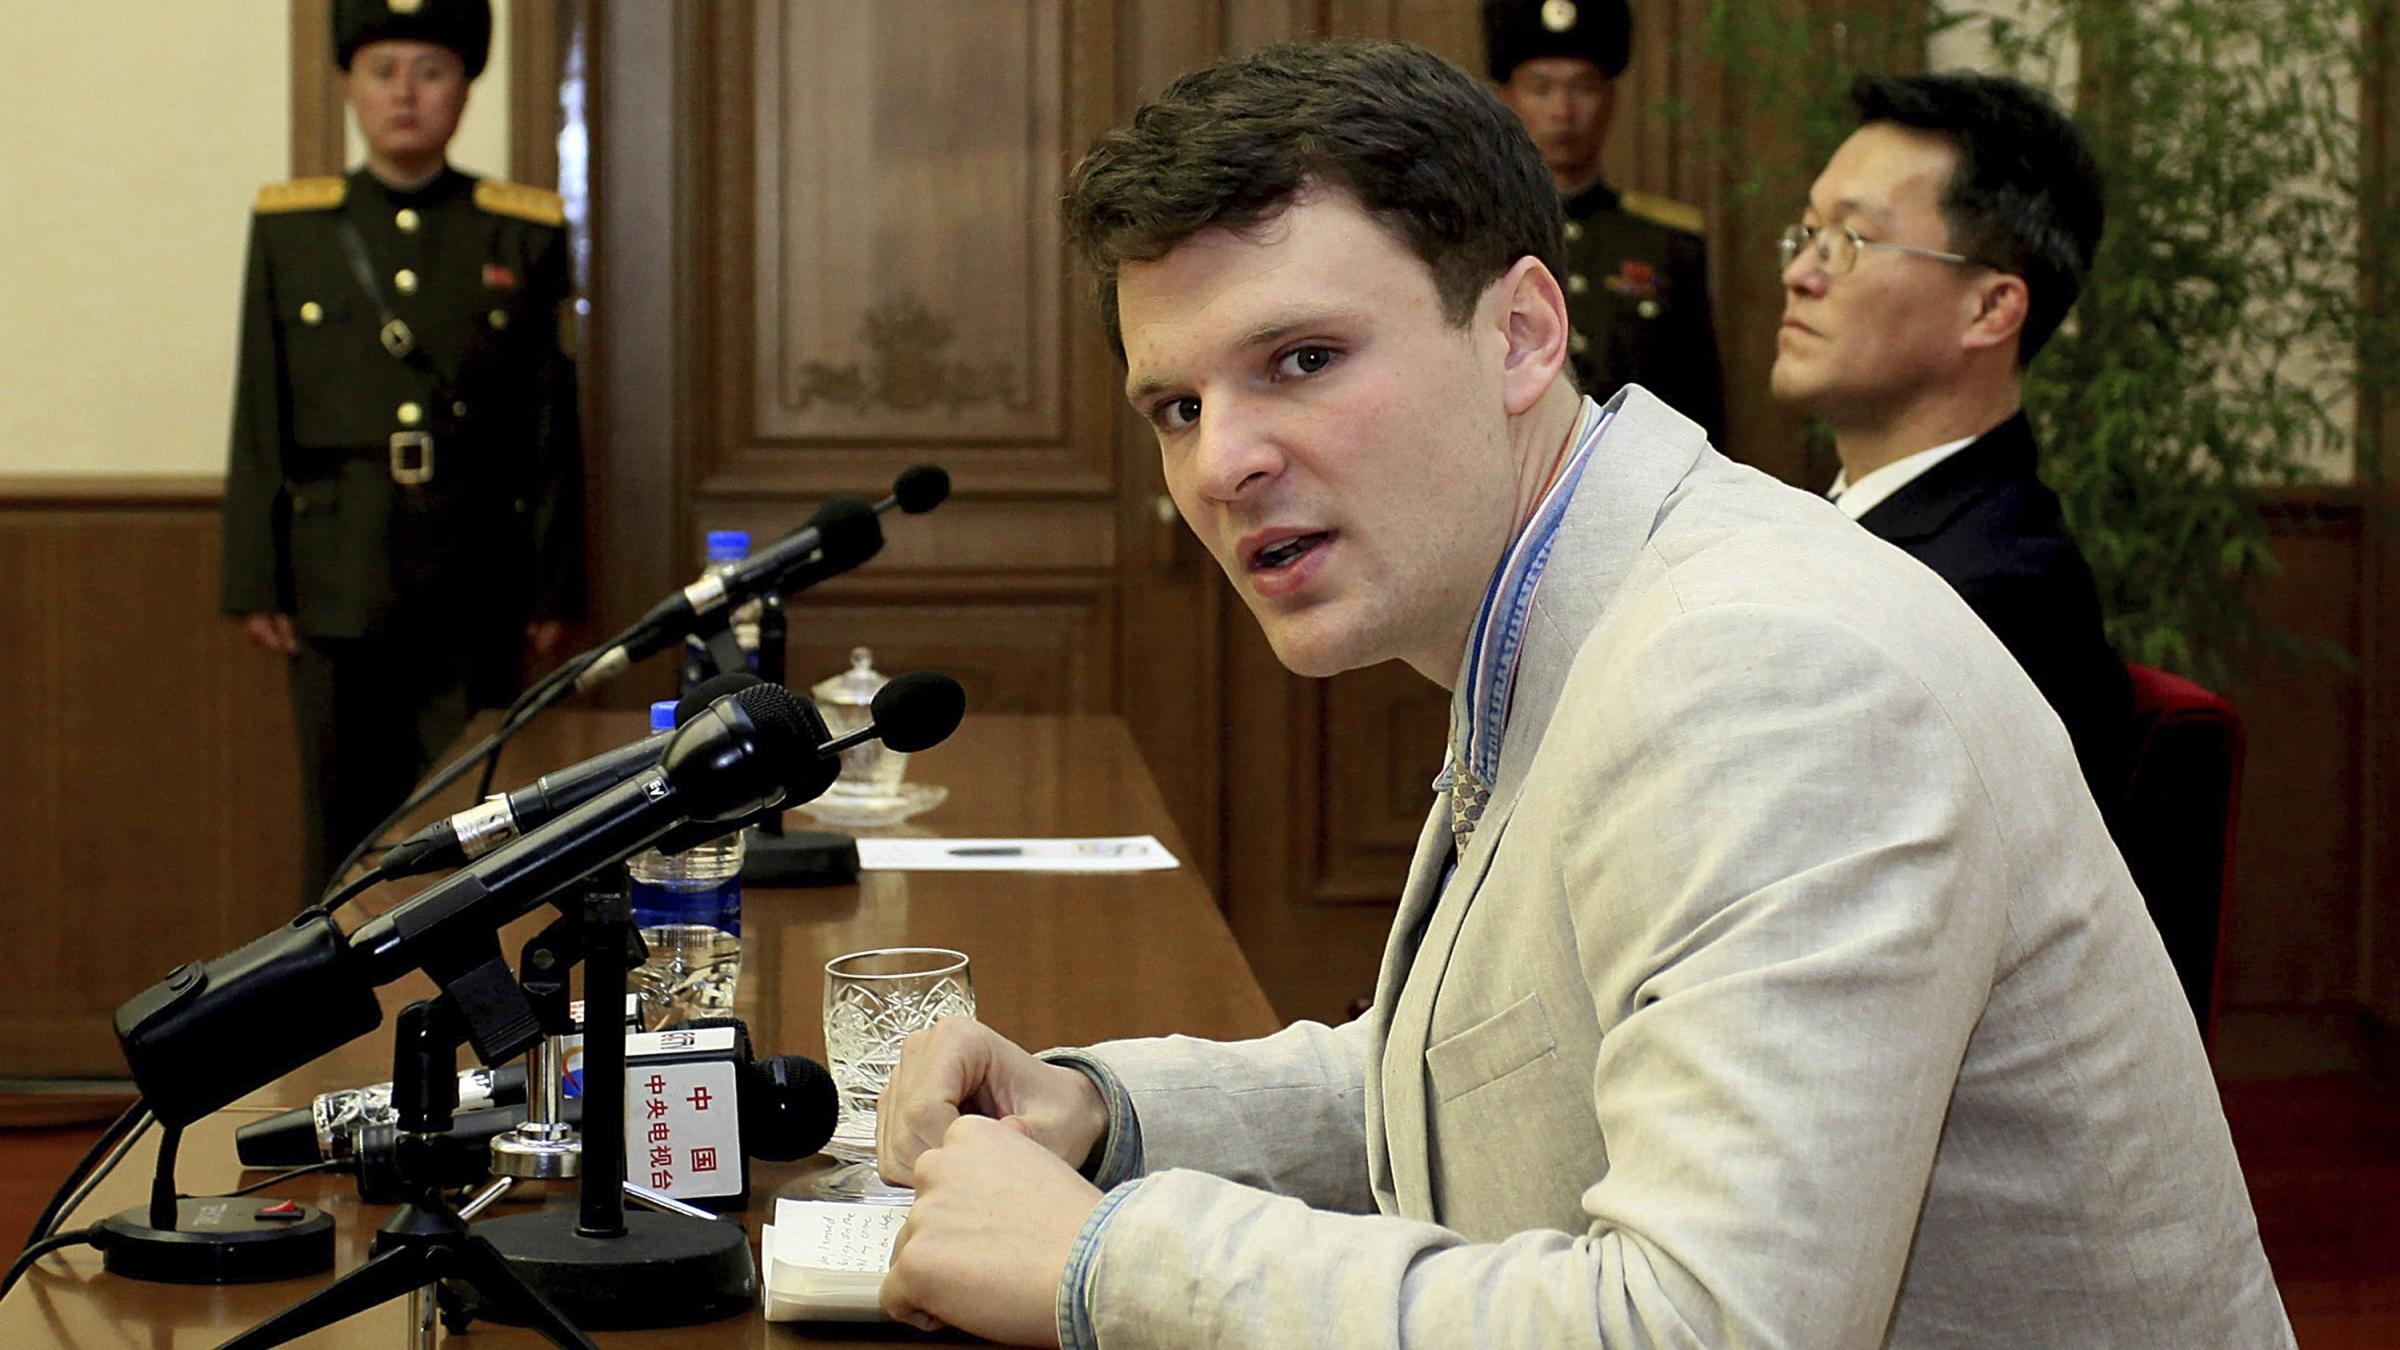 North Korea releases US citizen Otto Warmbier: Tillerson